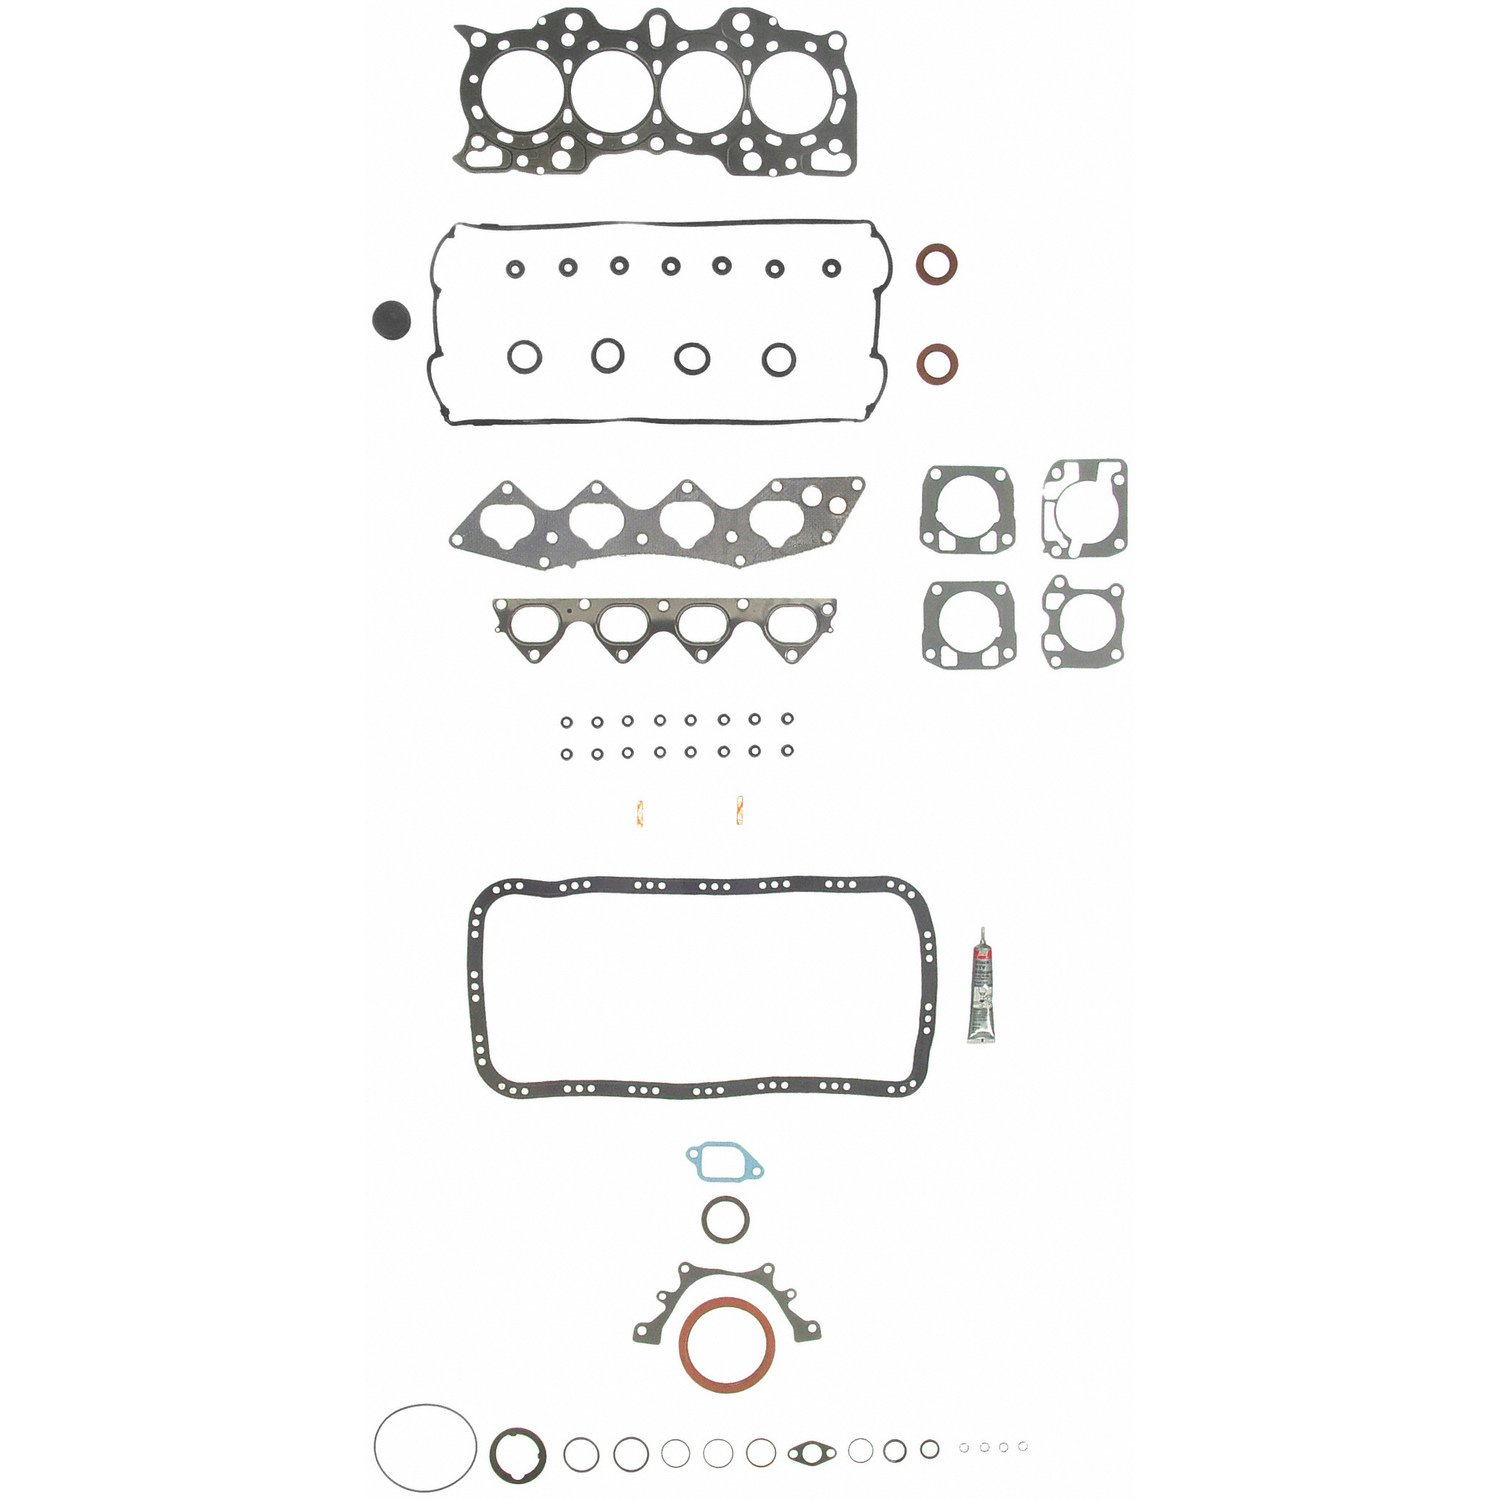 1995 Acura Integra Engine Gasket Set